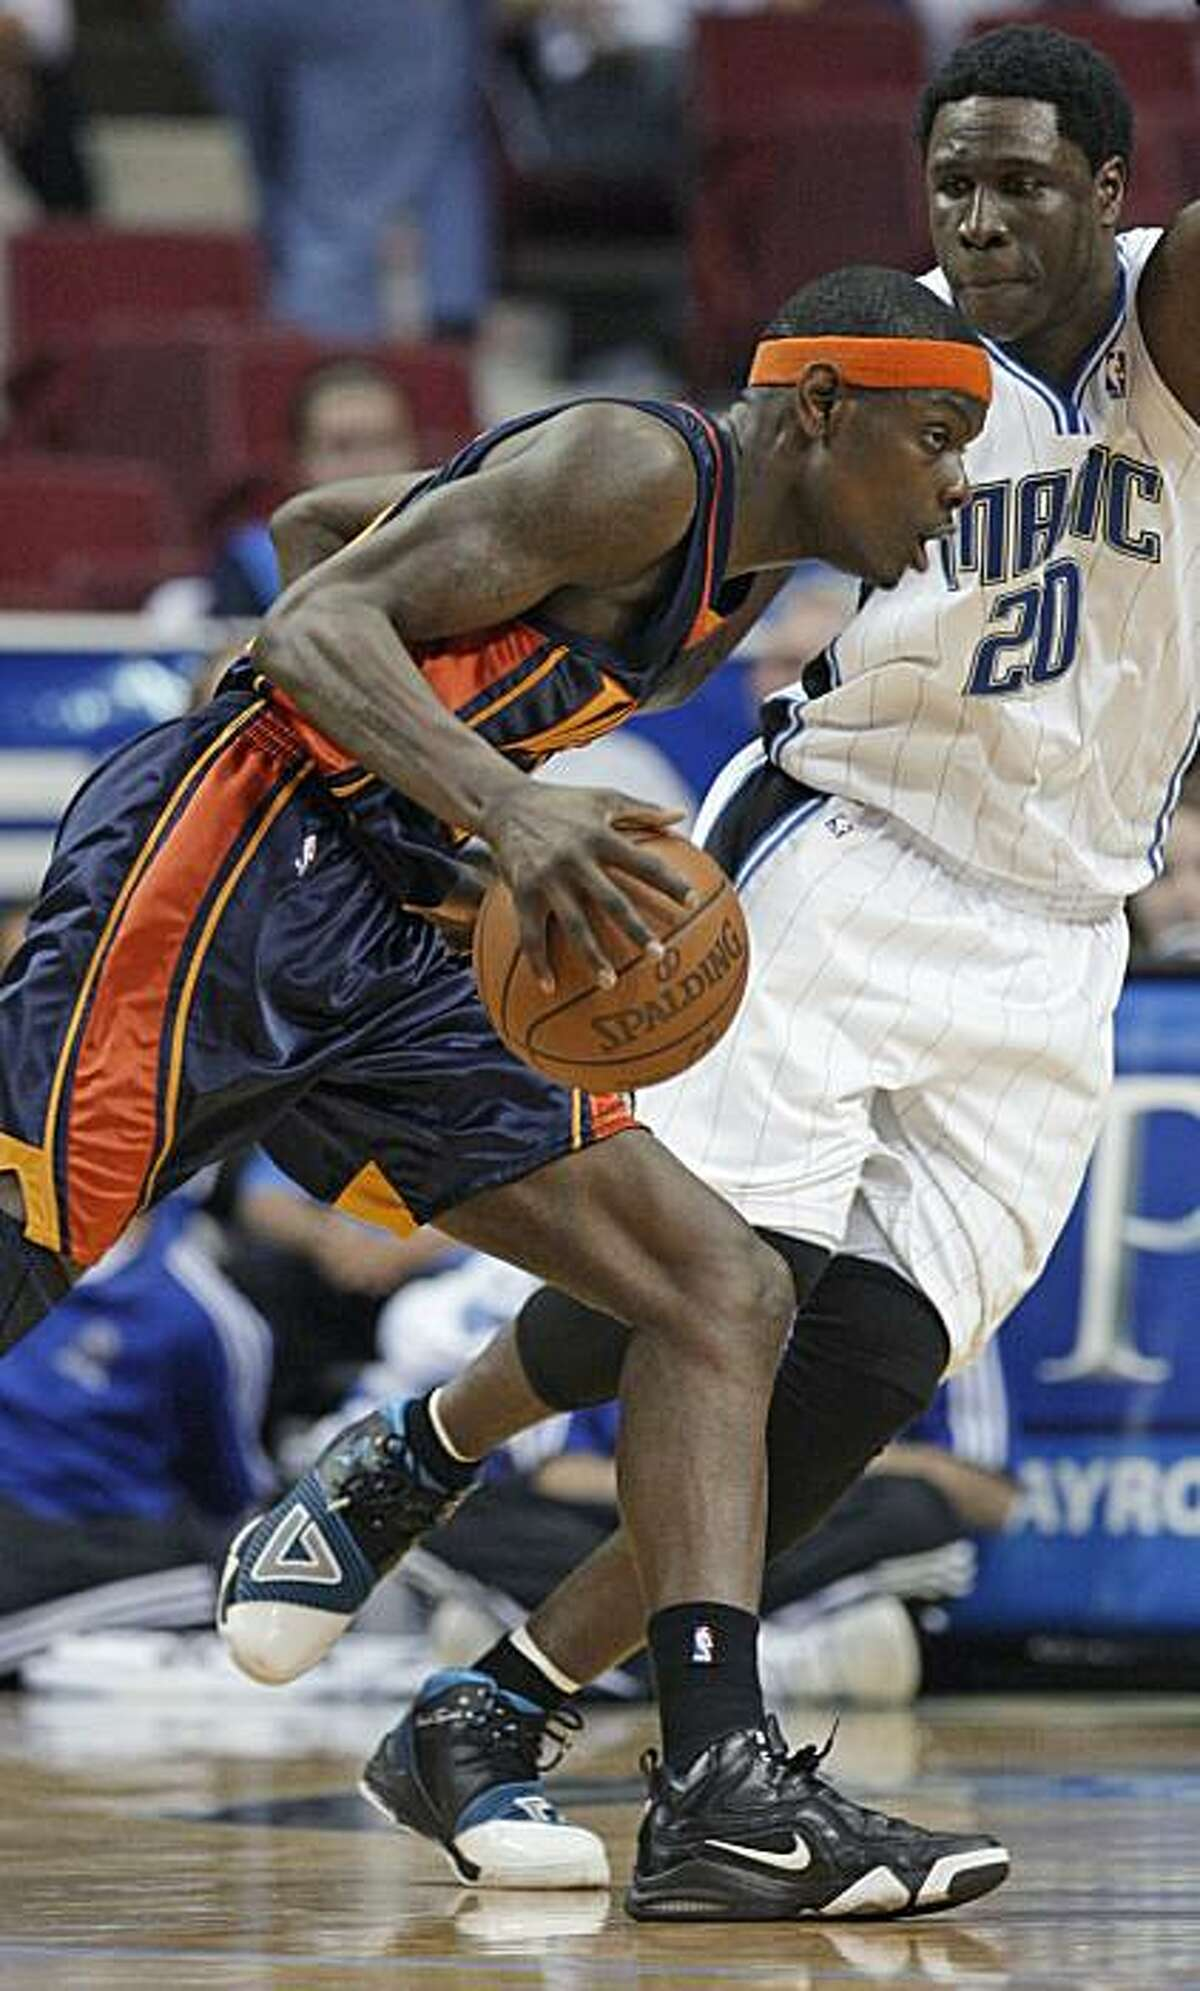 Golden State Warriors guard Anthony Morrow, left, drives around Orlando Magic forward Mickael Pietrus (20), of France, during the second half of an NBA basketball game in Orlando, Fla., Wednesday, March 3, 2010. Orlando won 117-90.